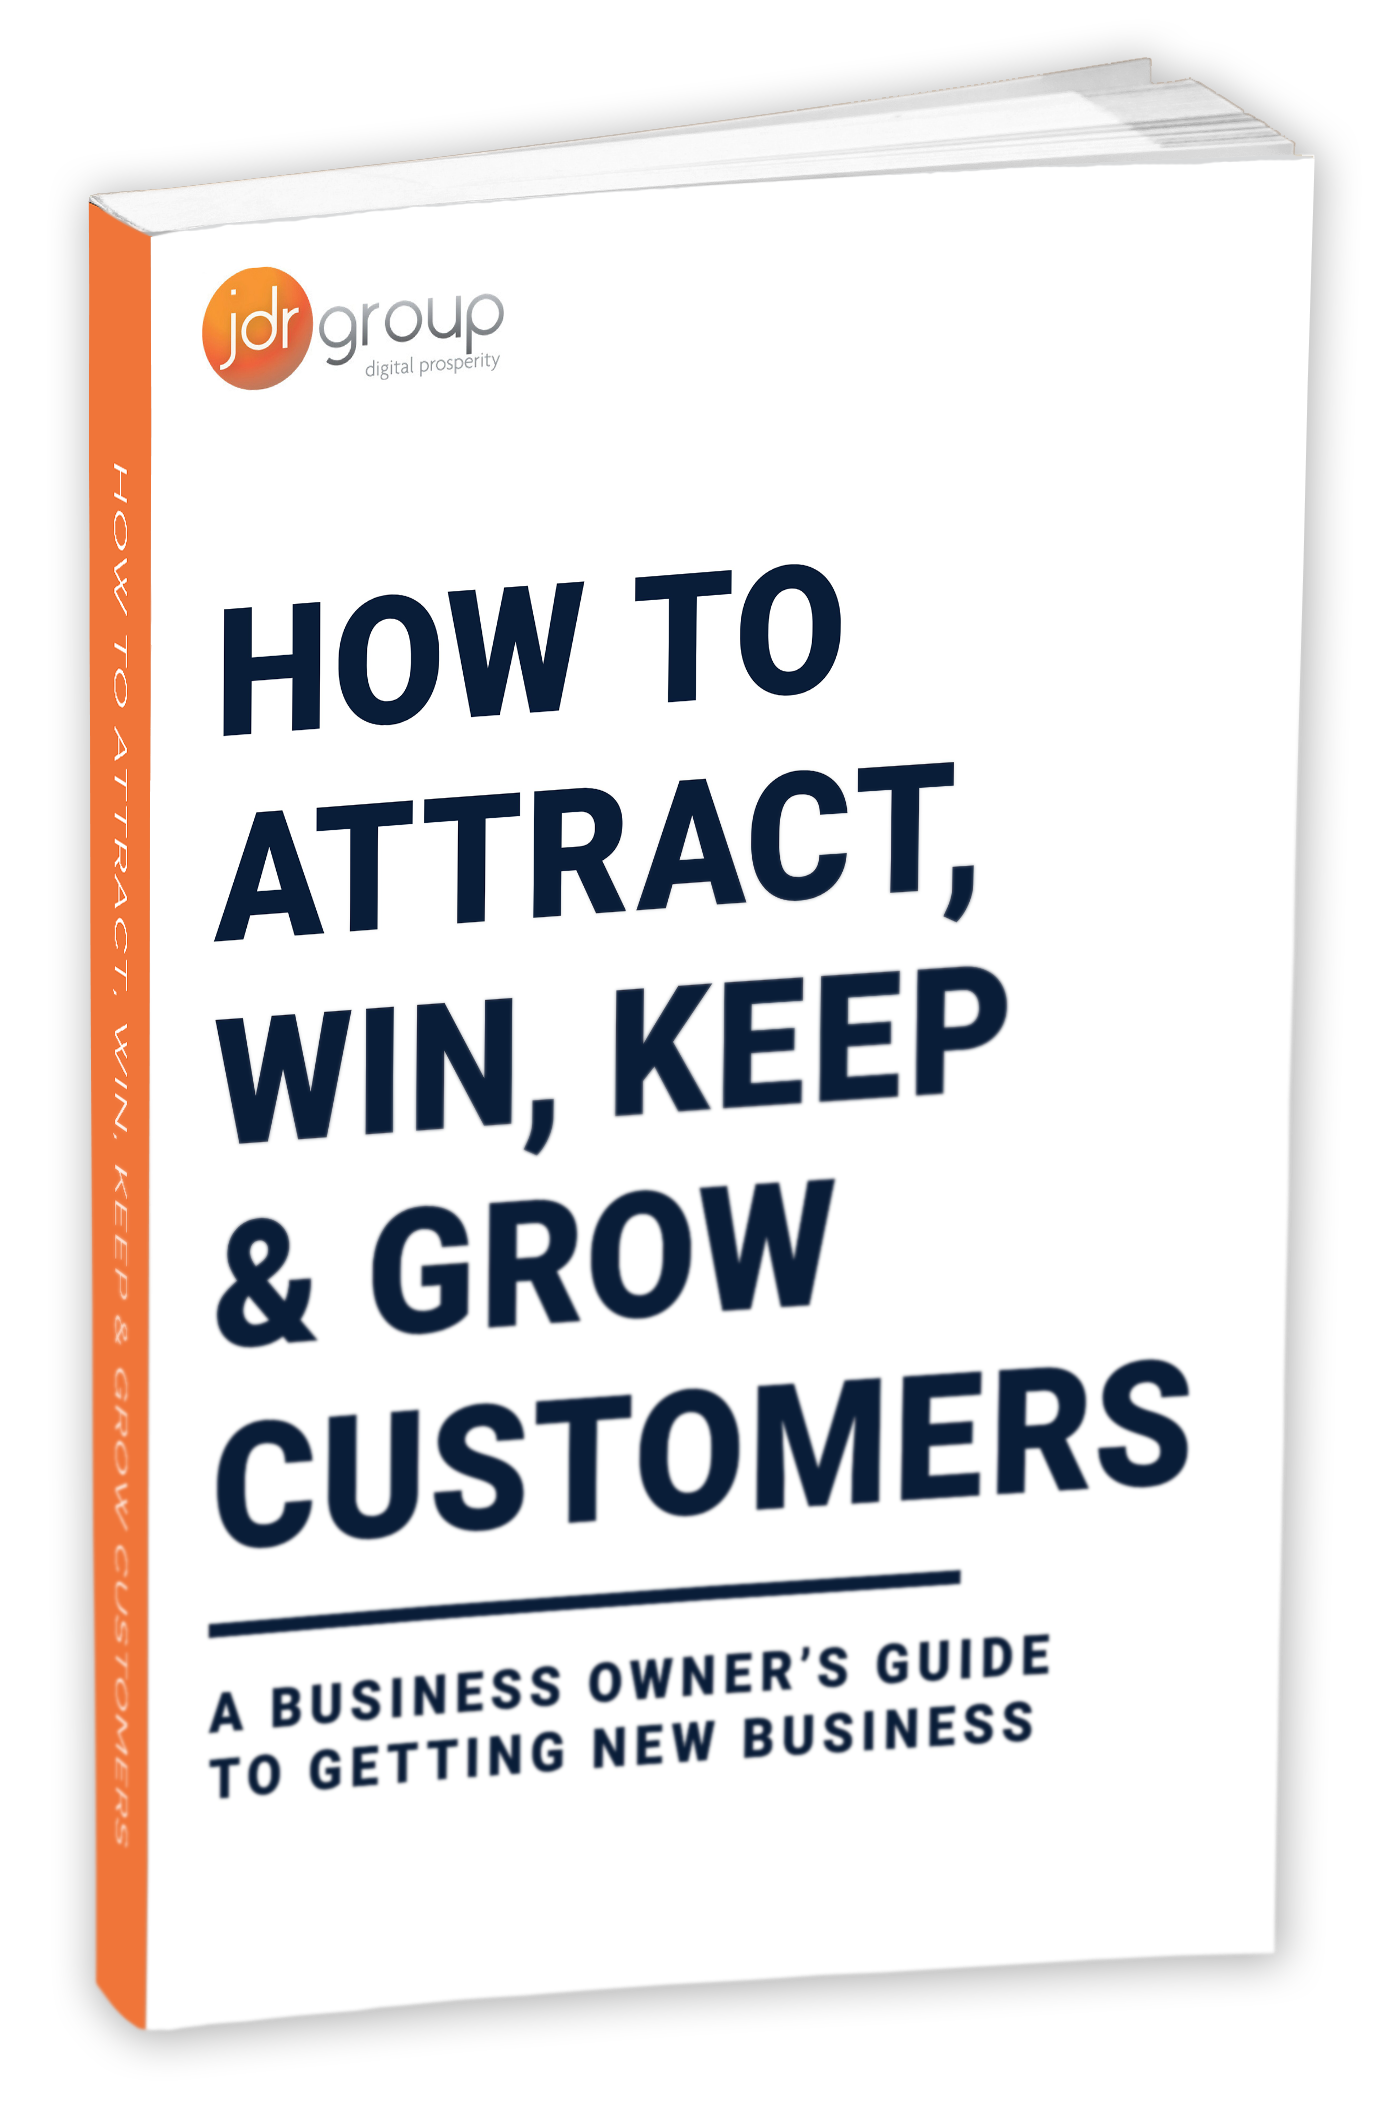 NEW-JDR-how-to-attract-win-grow-and-keep-customers-mock-up